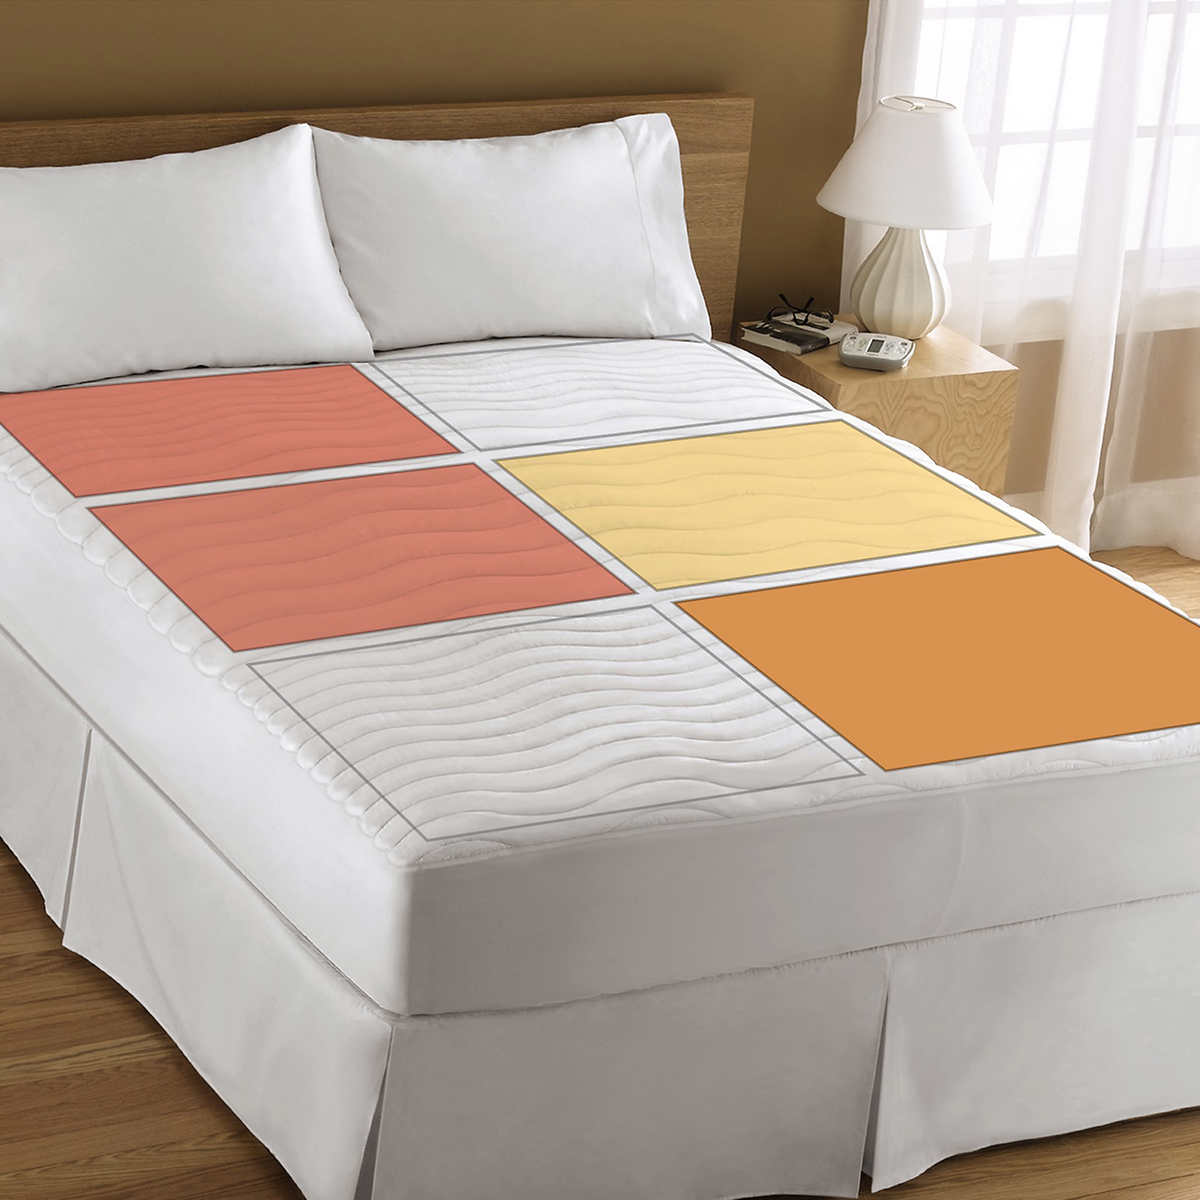 Image result for Heated Mattress Pad